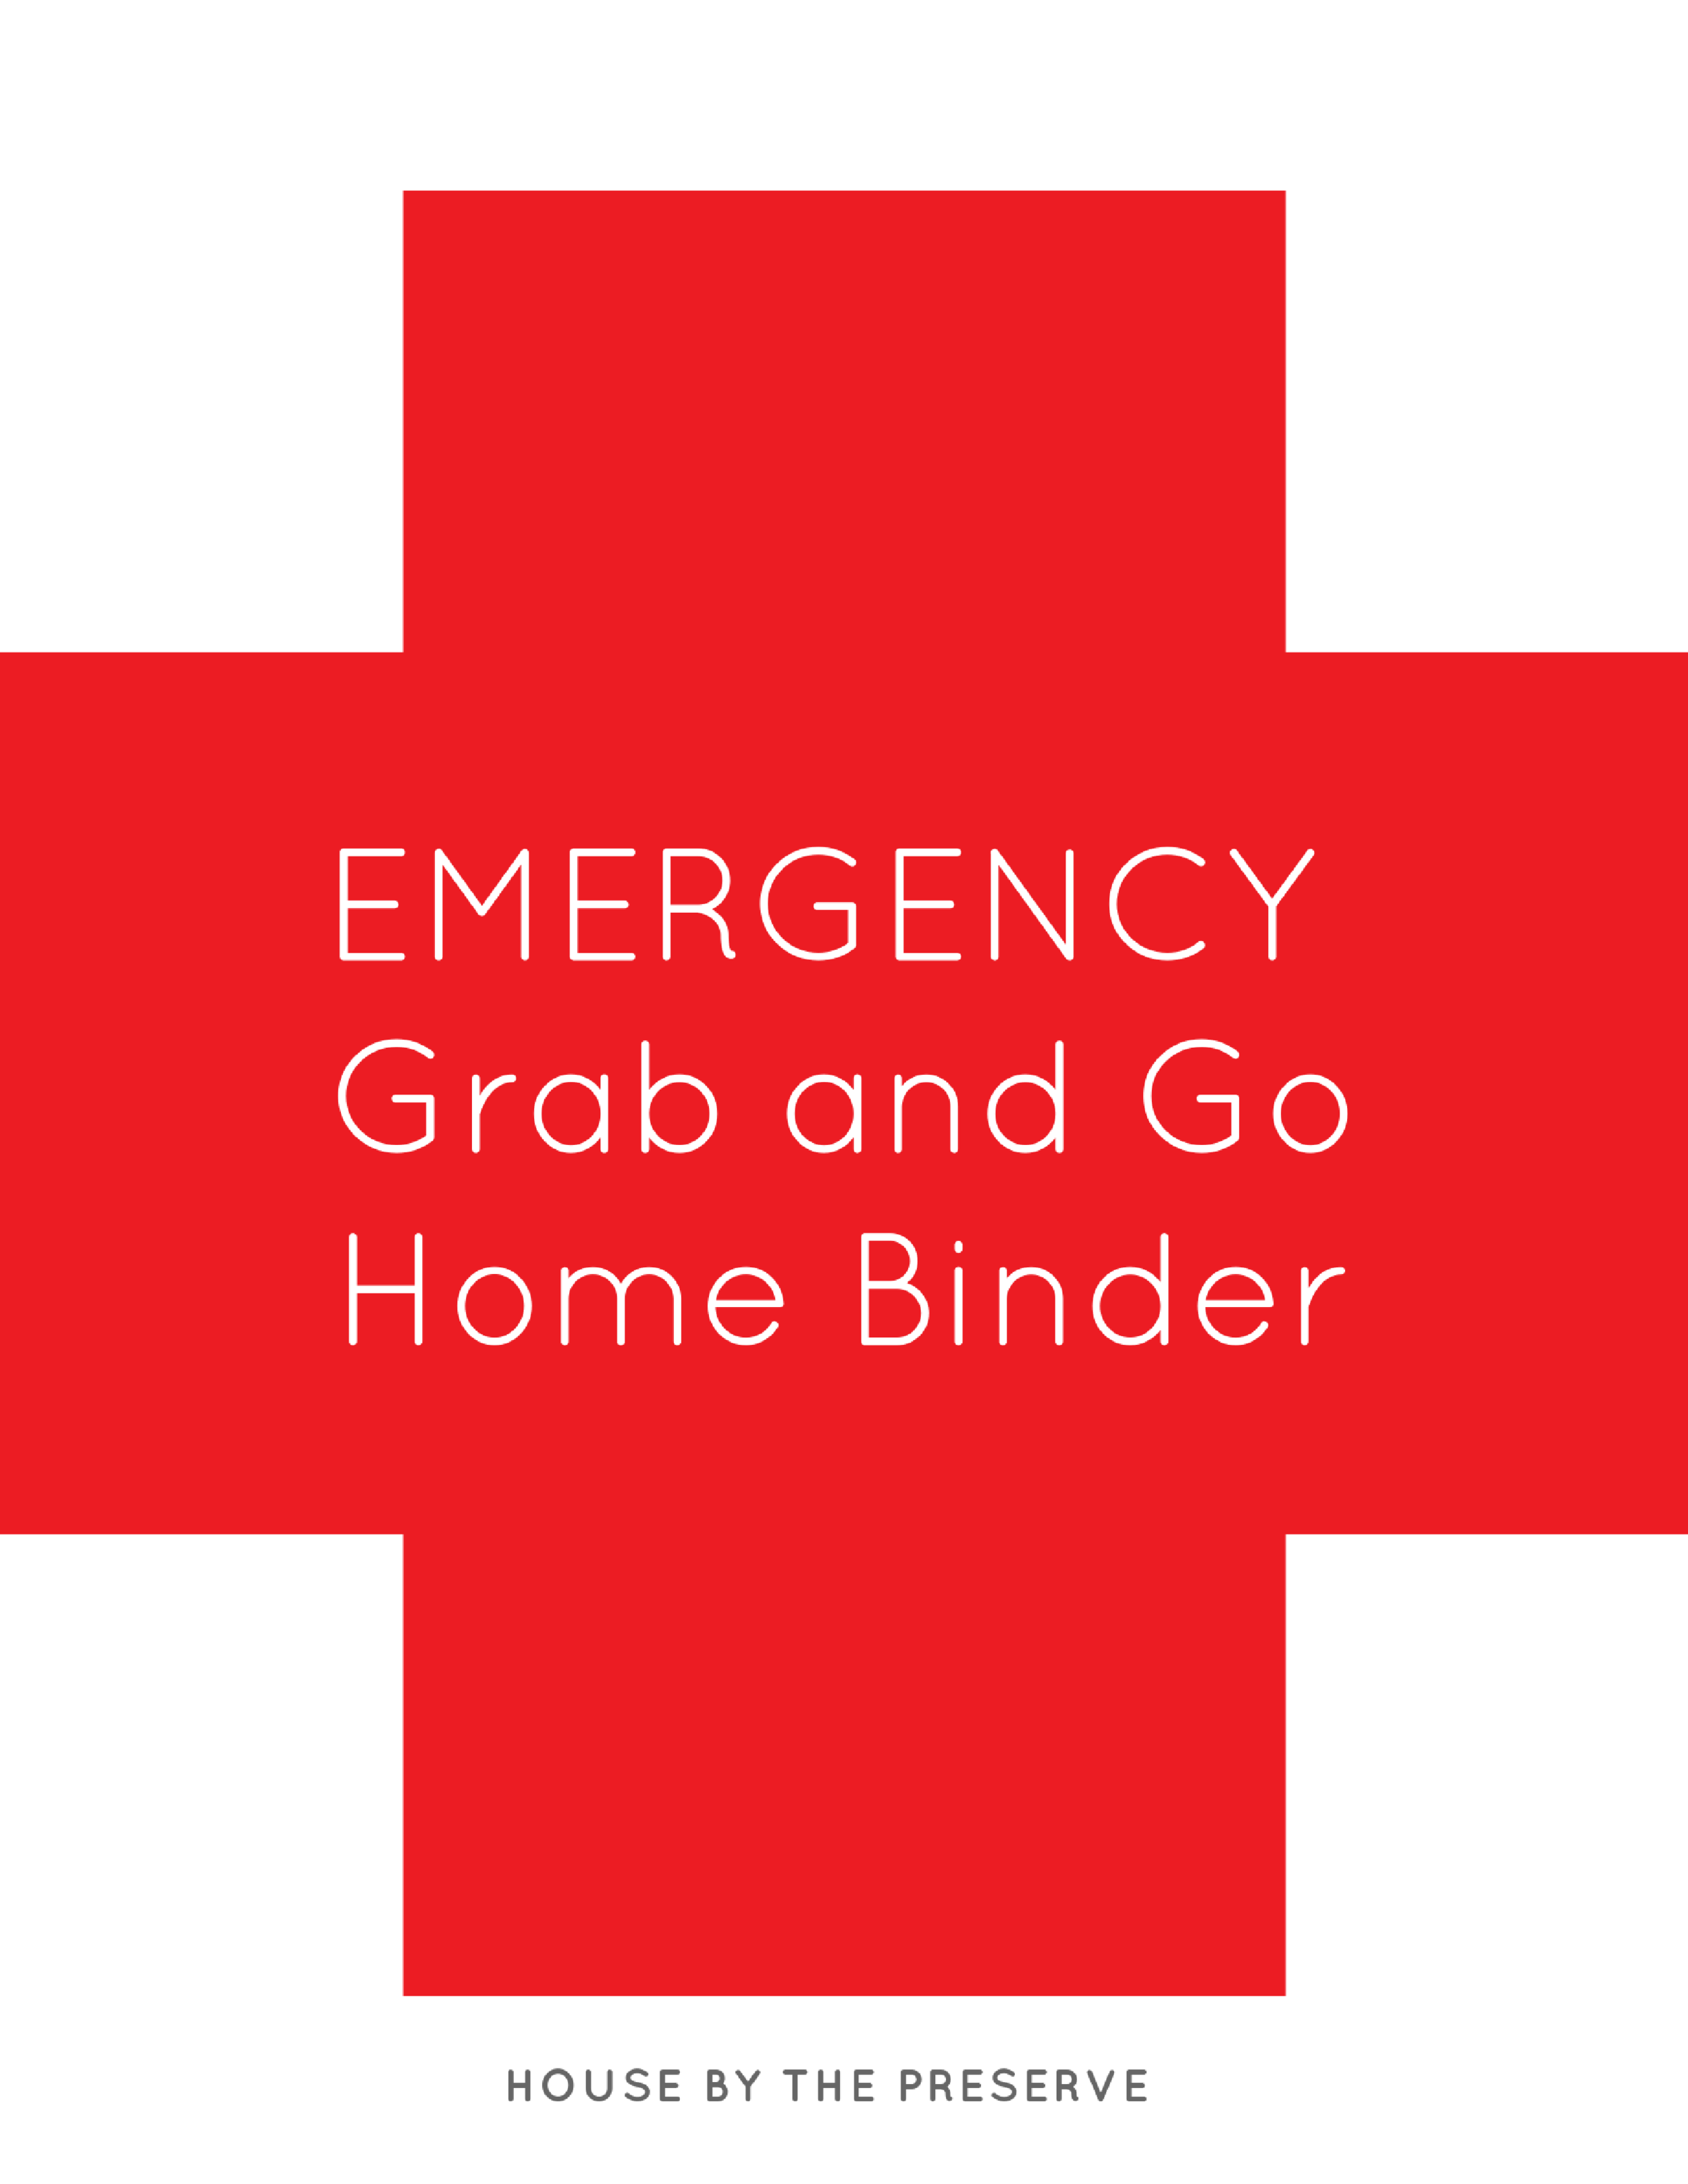 Emergency Grab & Go Home Binder - House by the Preserve.png